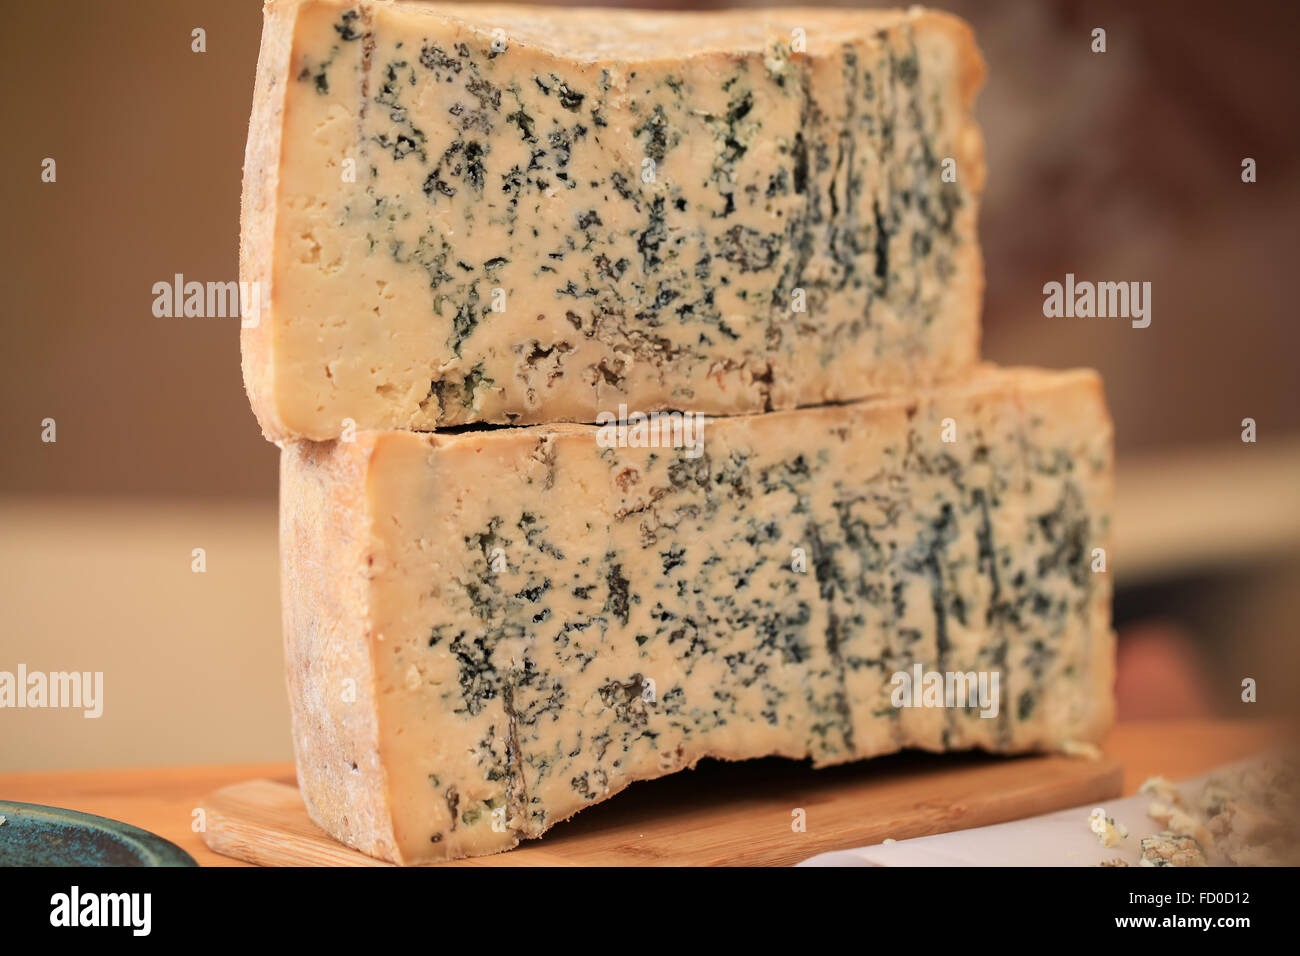 Sliced Gorgonzola or Roquefort cheese loaf - Stock Image